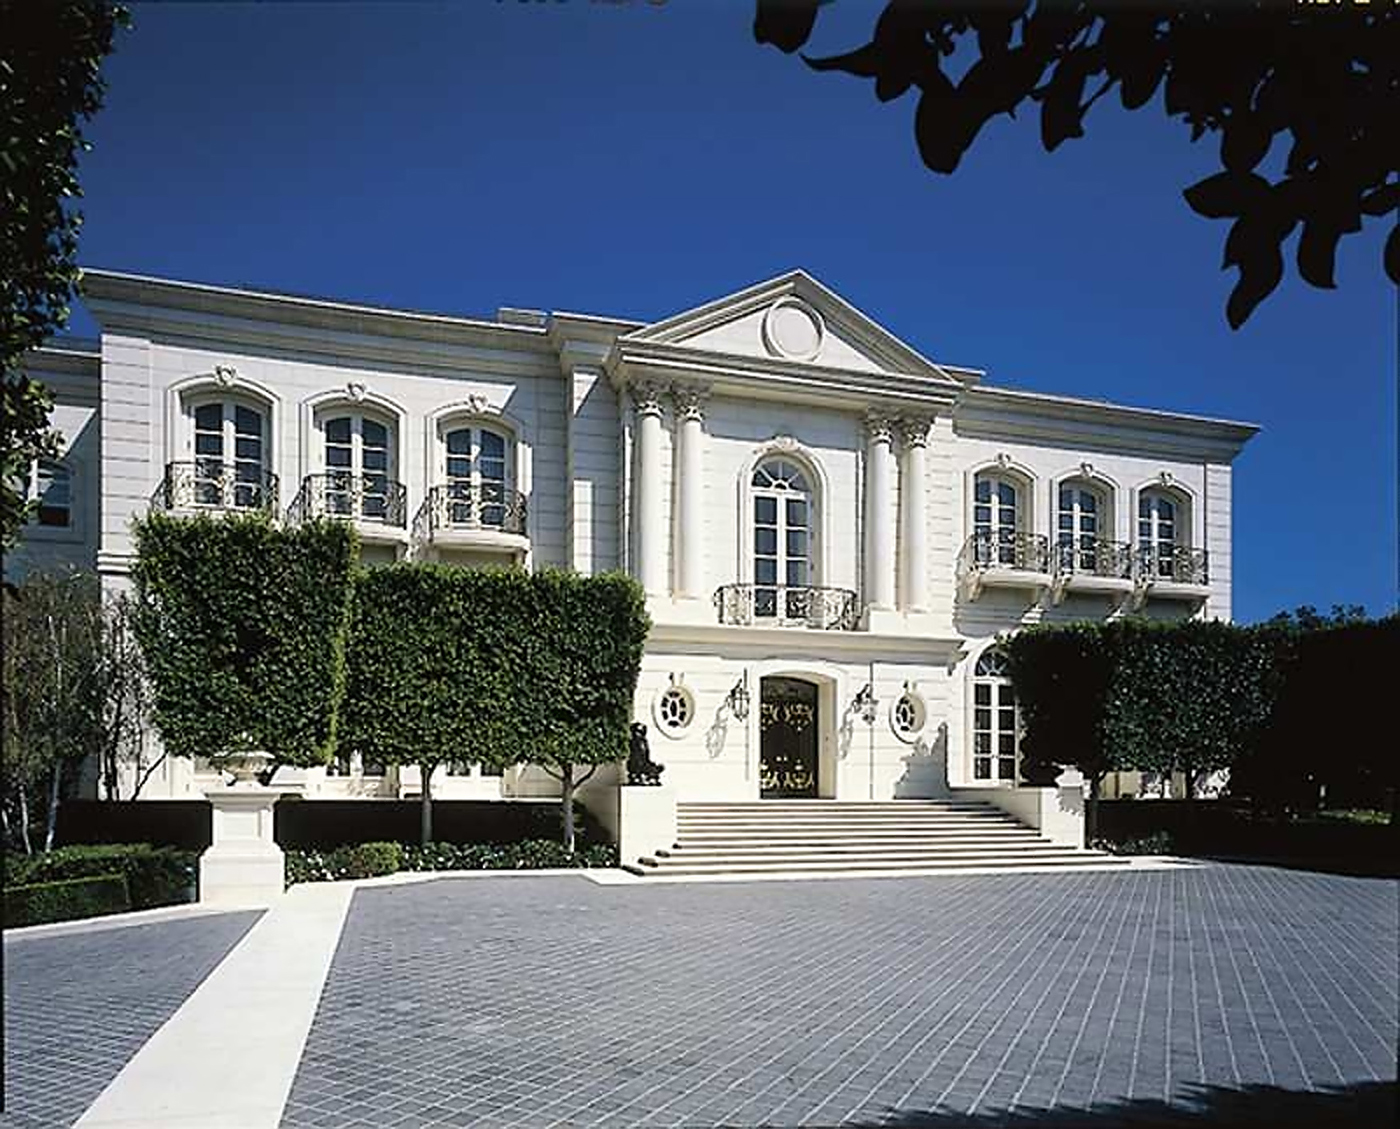 Bel Air Mega Mansion For Sale Adieu To A 40 Million Beauty World Property Journal